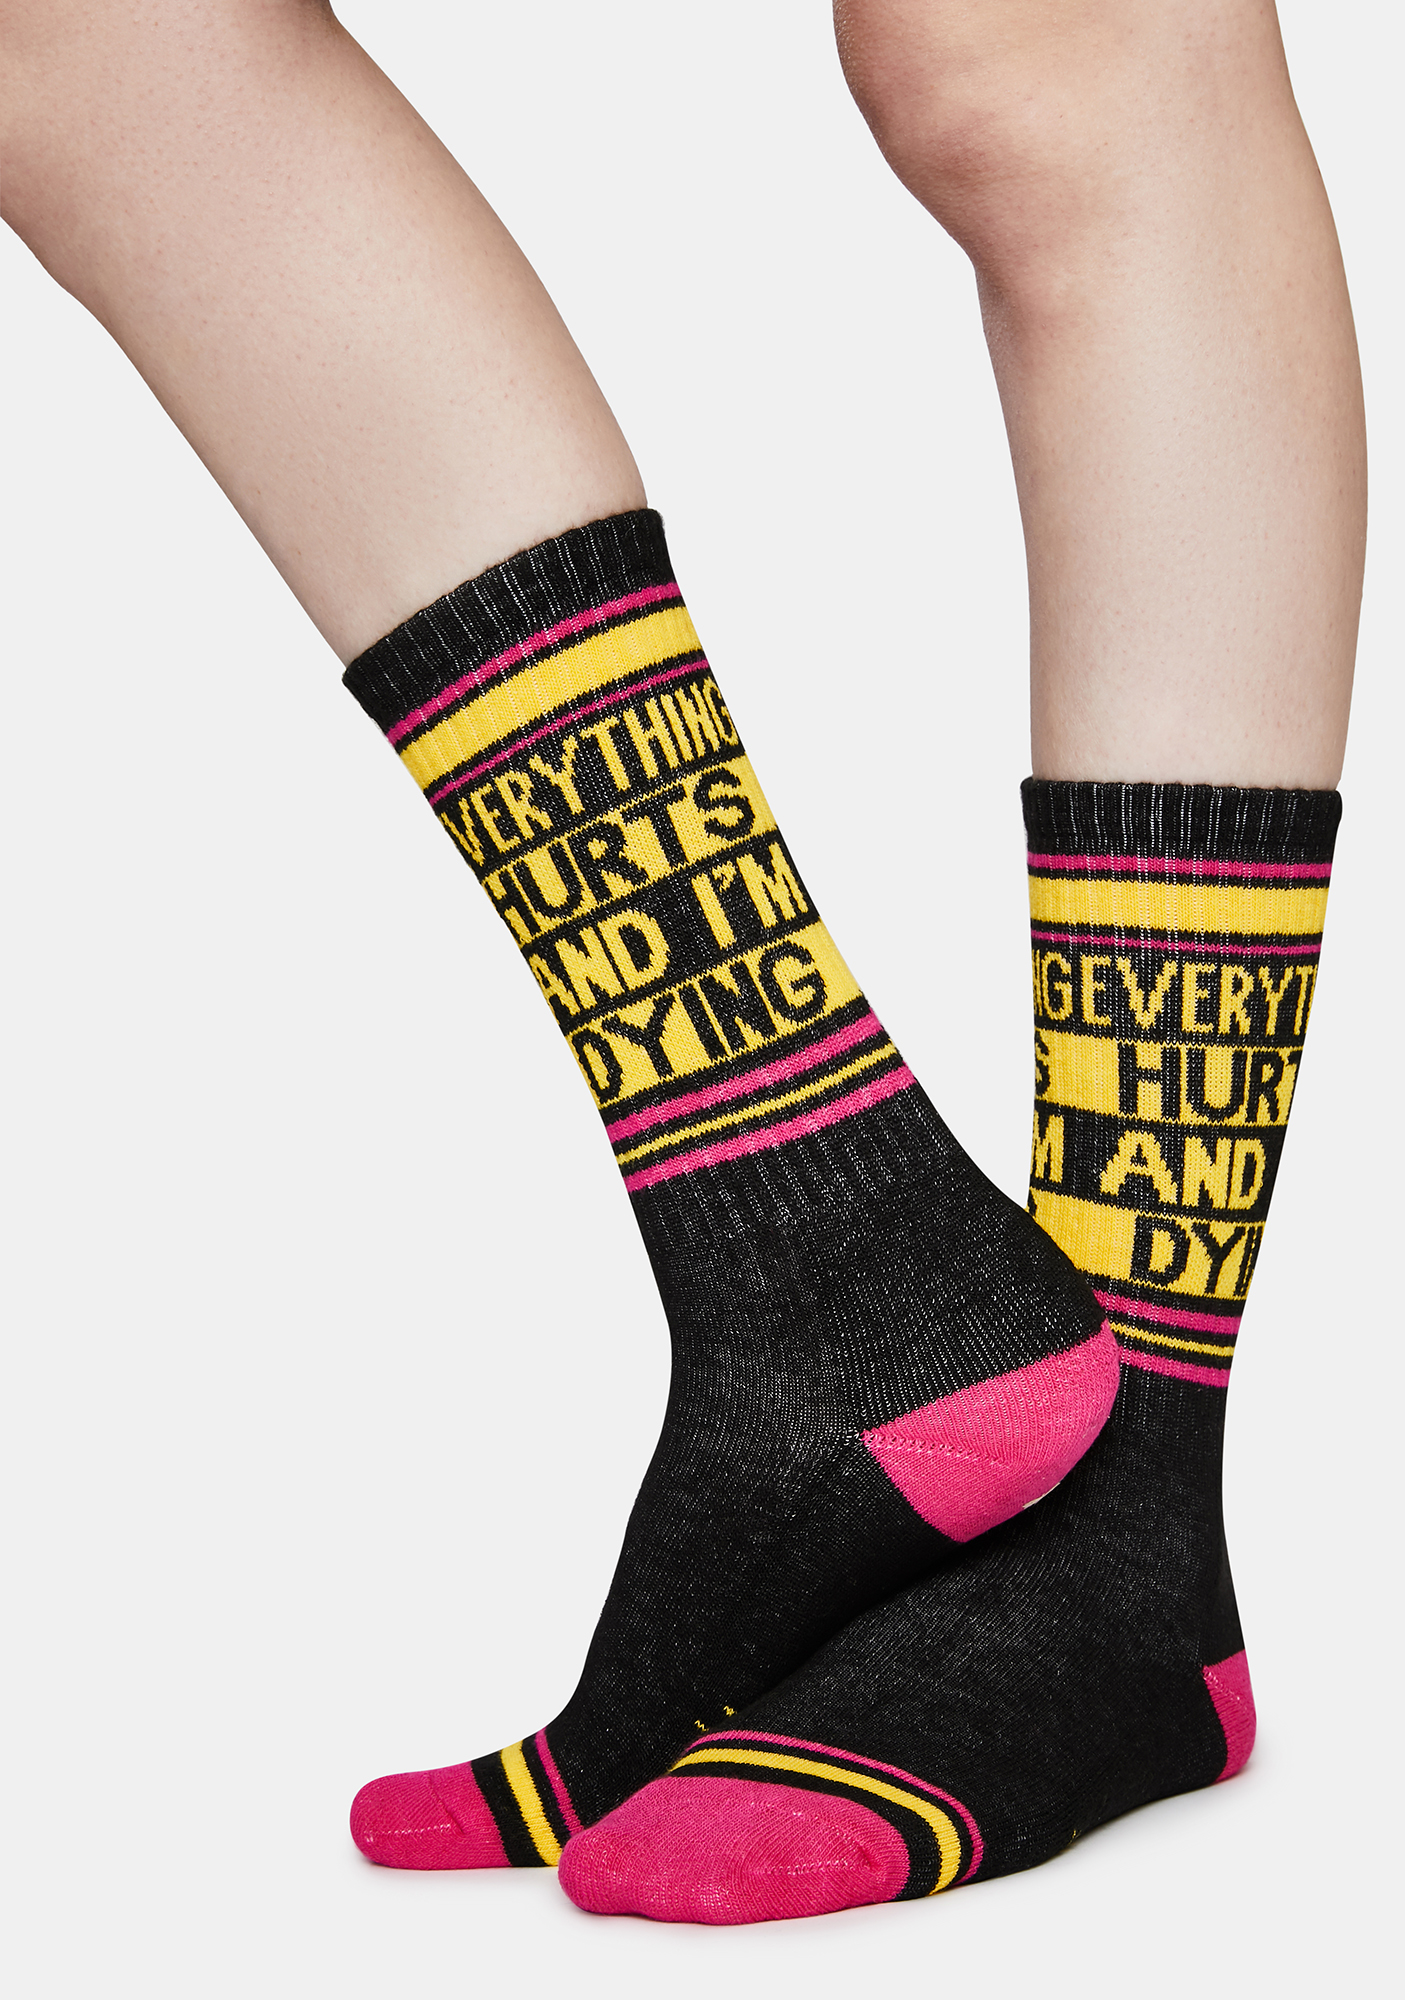 Heavy Metal Made Me What I Am Today Gumball Poodle Unisex Crew Socks